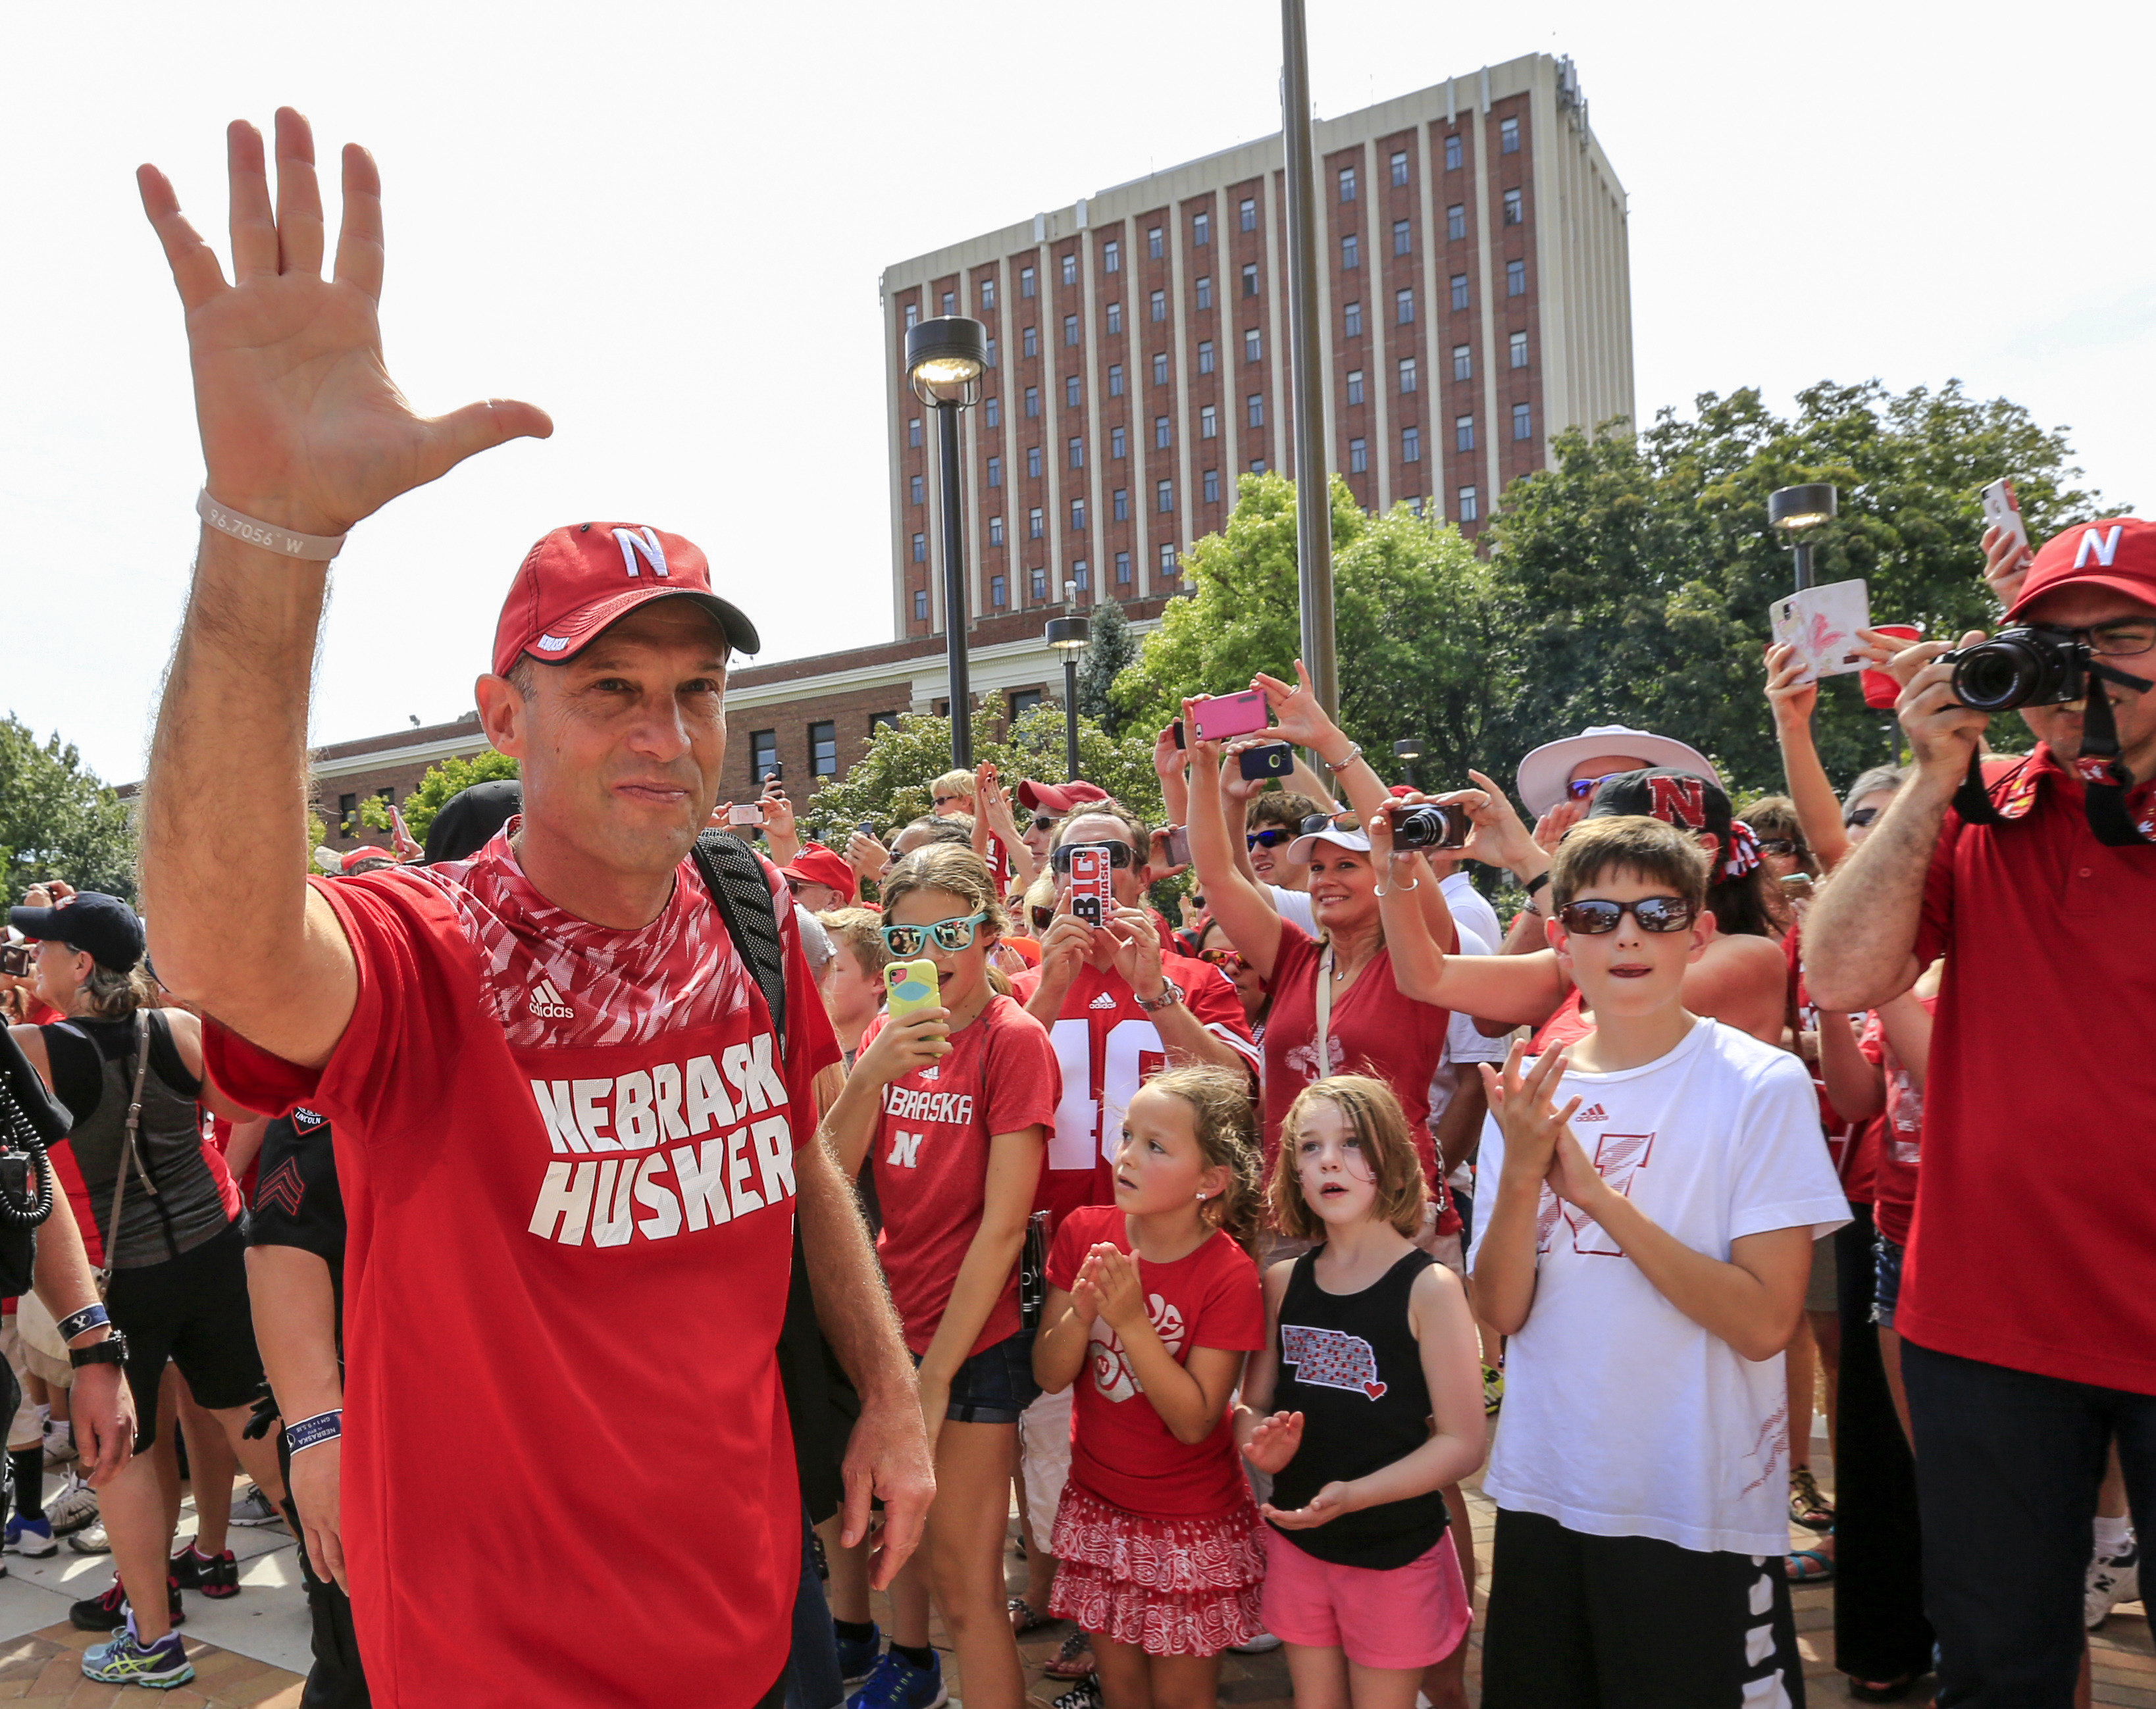 Nebraska head coach Mike Riley waves to fans as he arrives to Memorial Stadium before an NCAA college football game between Nebraska and Brigham Young in Lincoln, Neb., Saturday, Sept. 5, 2015. (AP Photo/Nati Harnik)